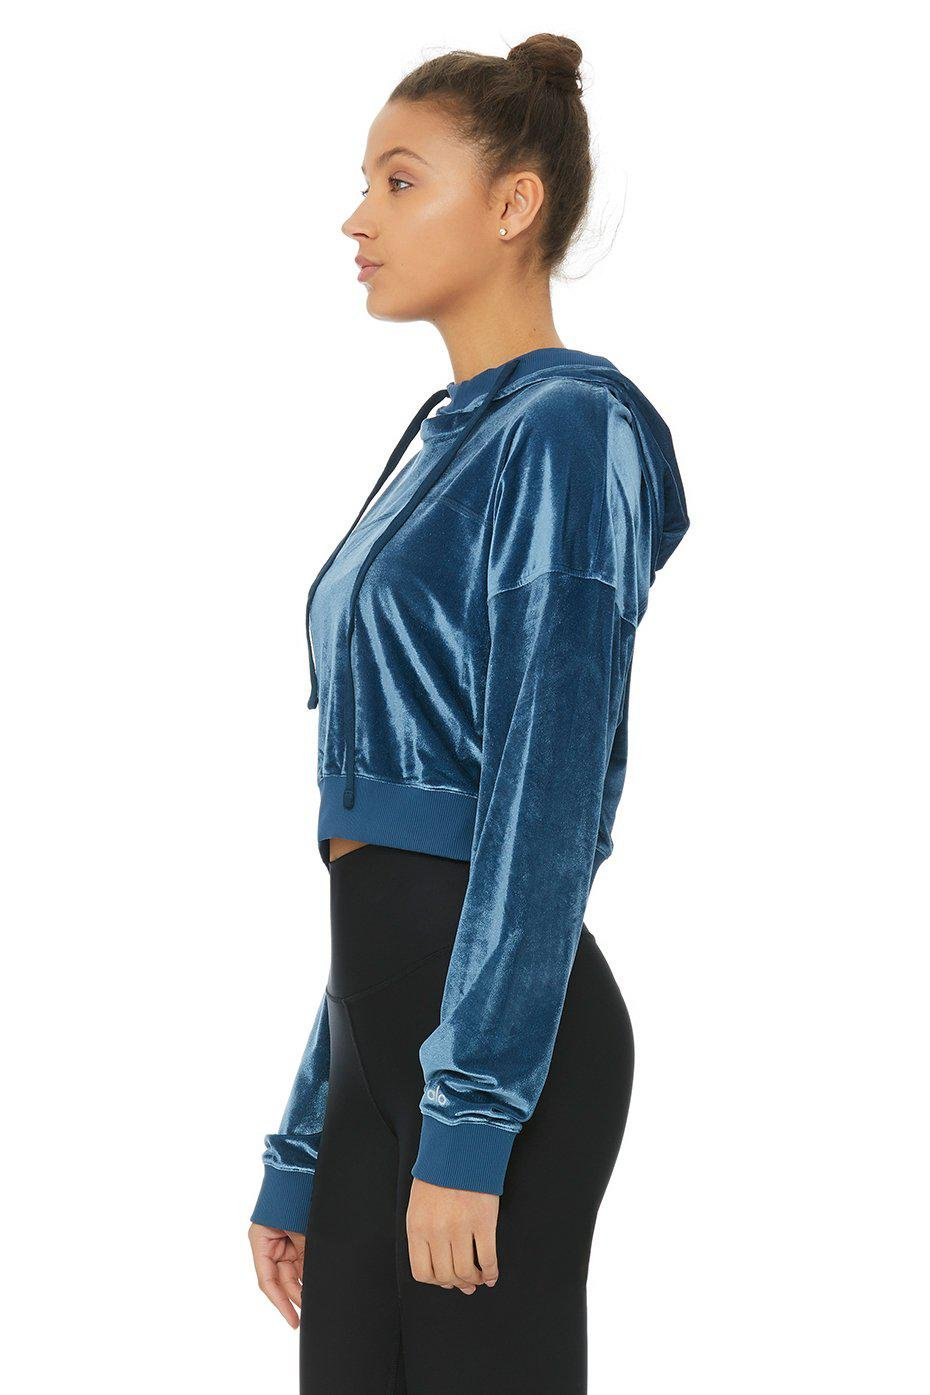 Layer Long Sleeve Top - Eclipse 1